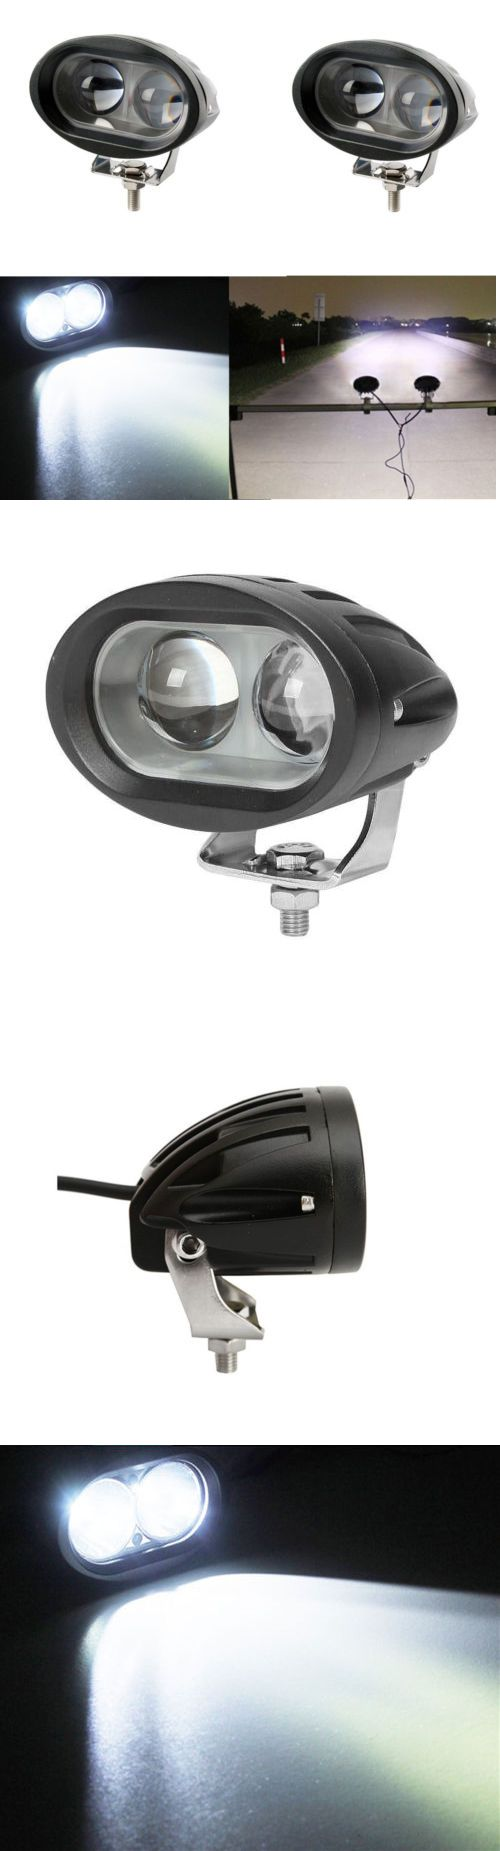 boat parts: 20W White Spreader Led Marine Lights (Set Of 2) For Boat (Spot Light) Waterproof BUY IT NOW ONLY: $38.69